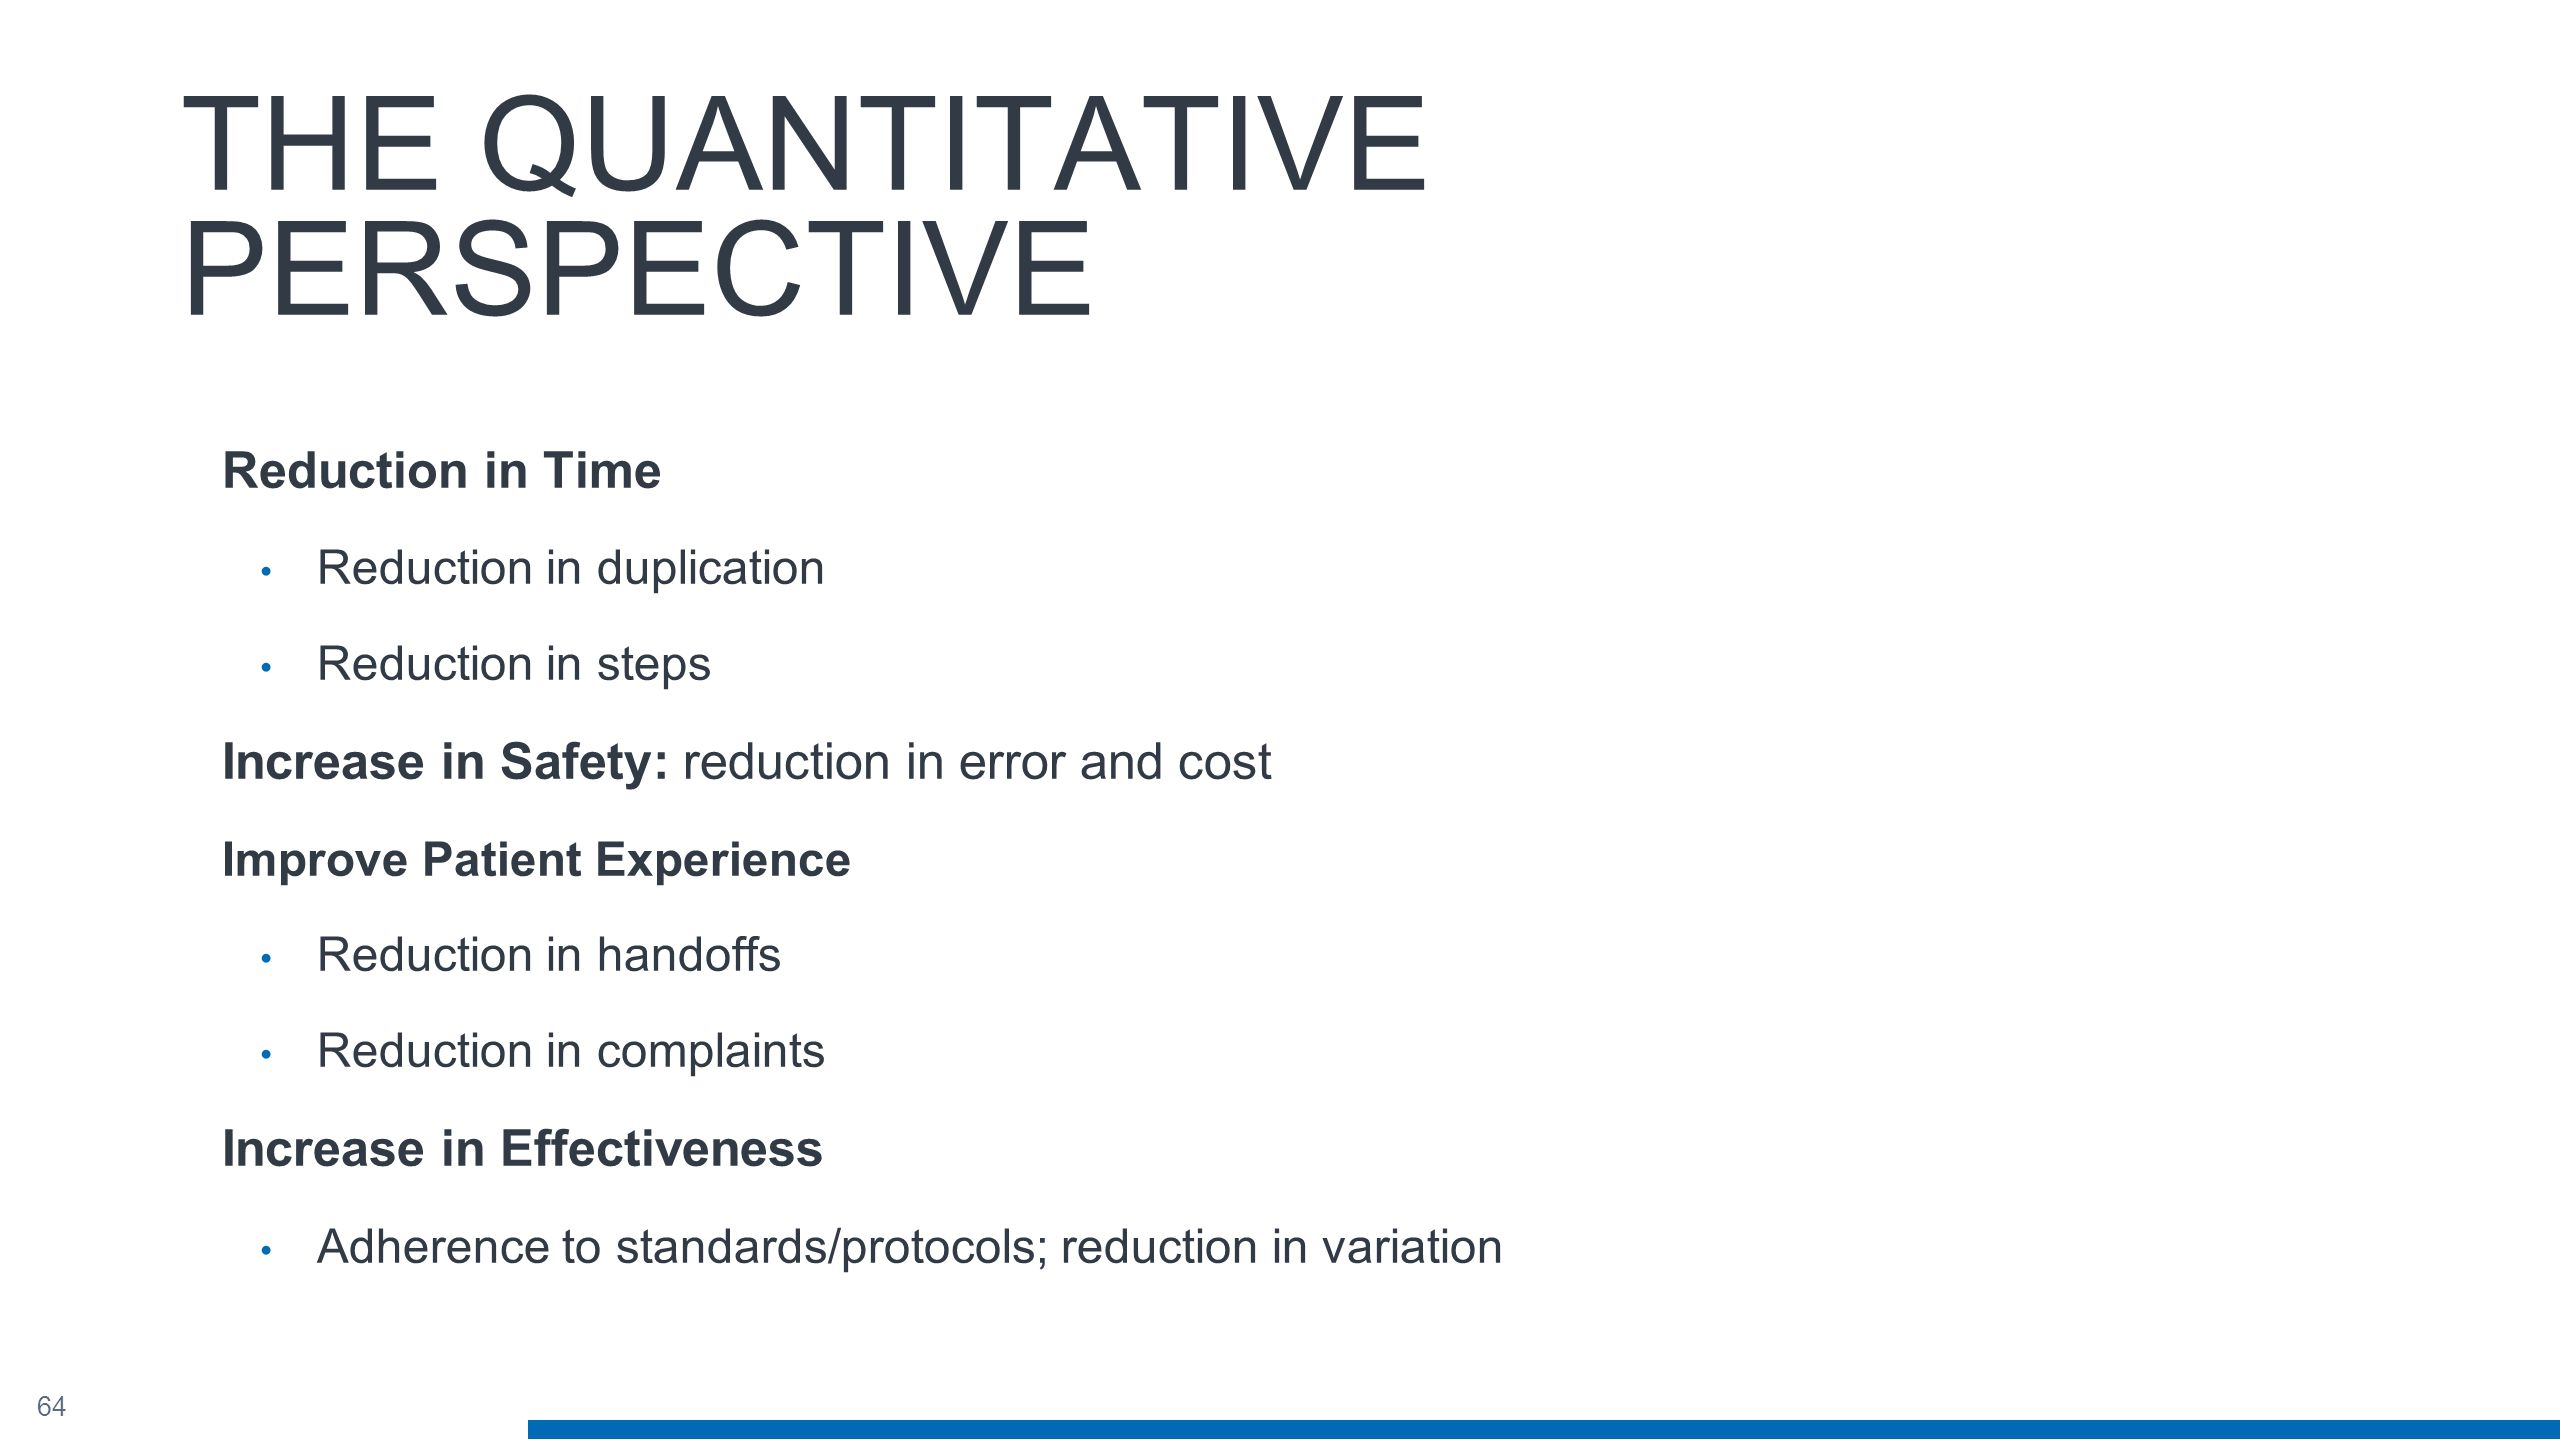 64 THE QUANTITATIVE PERSPECTIVE Reduction in Time Reduction in duplication Reduction in steps Increase in Safety: reduction in error and cost Improve Patient Experience Reduction in handoffs Reduction in complaints Increase in Effectiveness Adherence to standards/protocols; reduction in variation